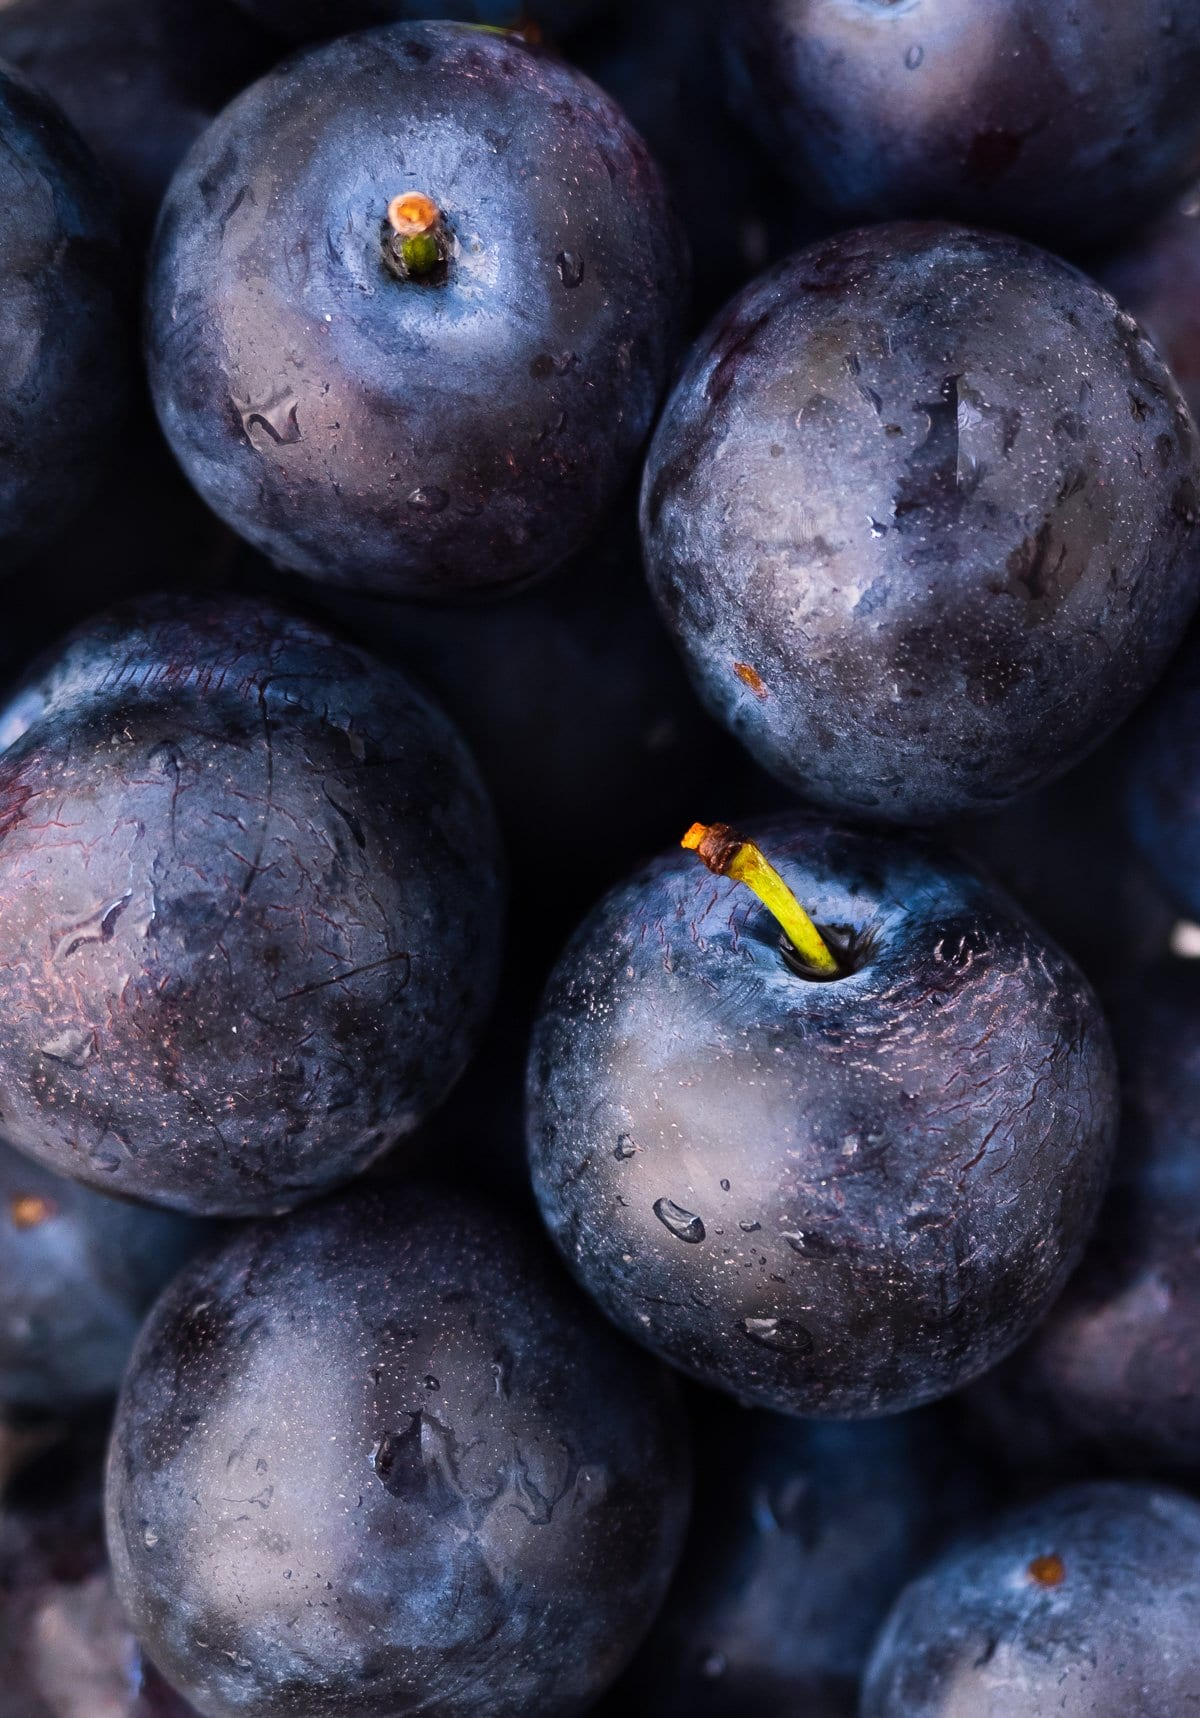 Close-up image of fresh plums.